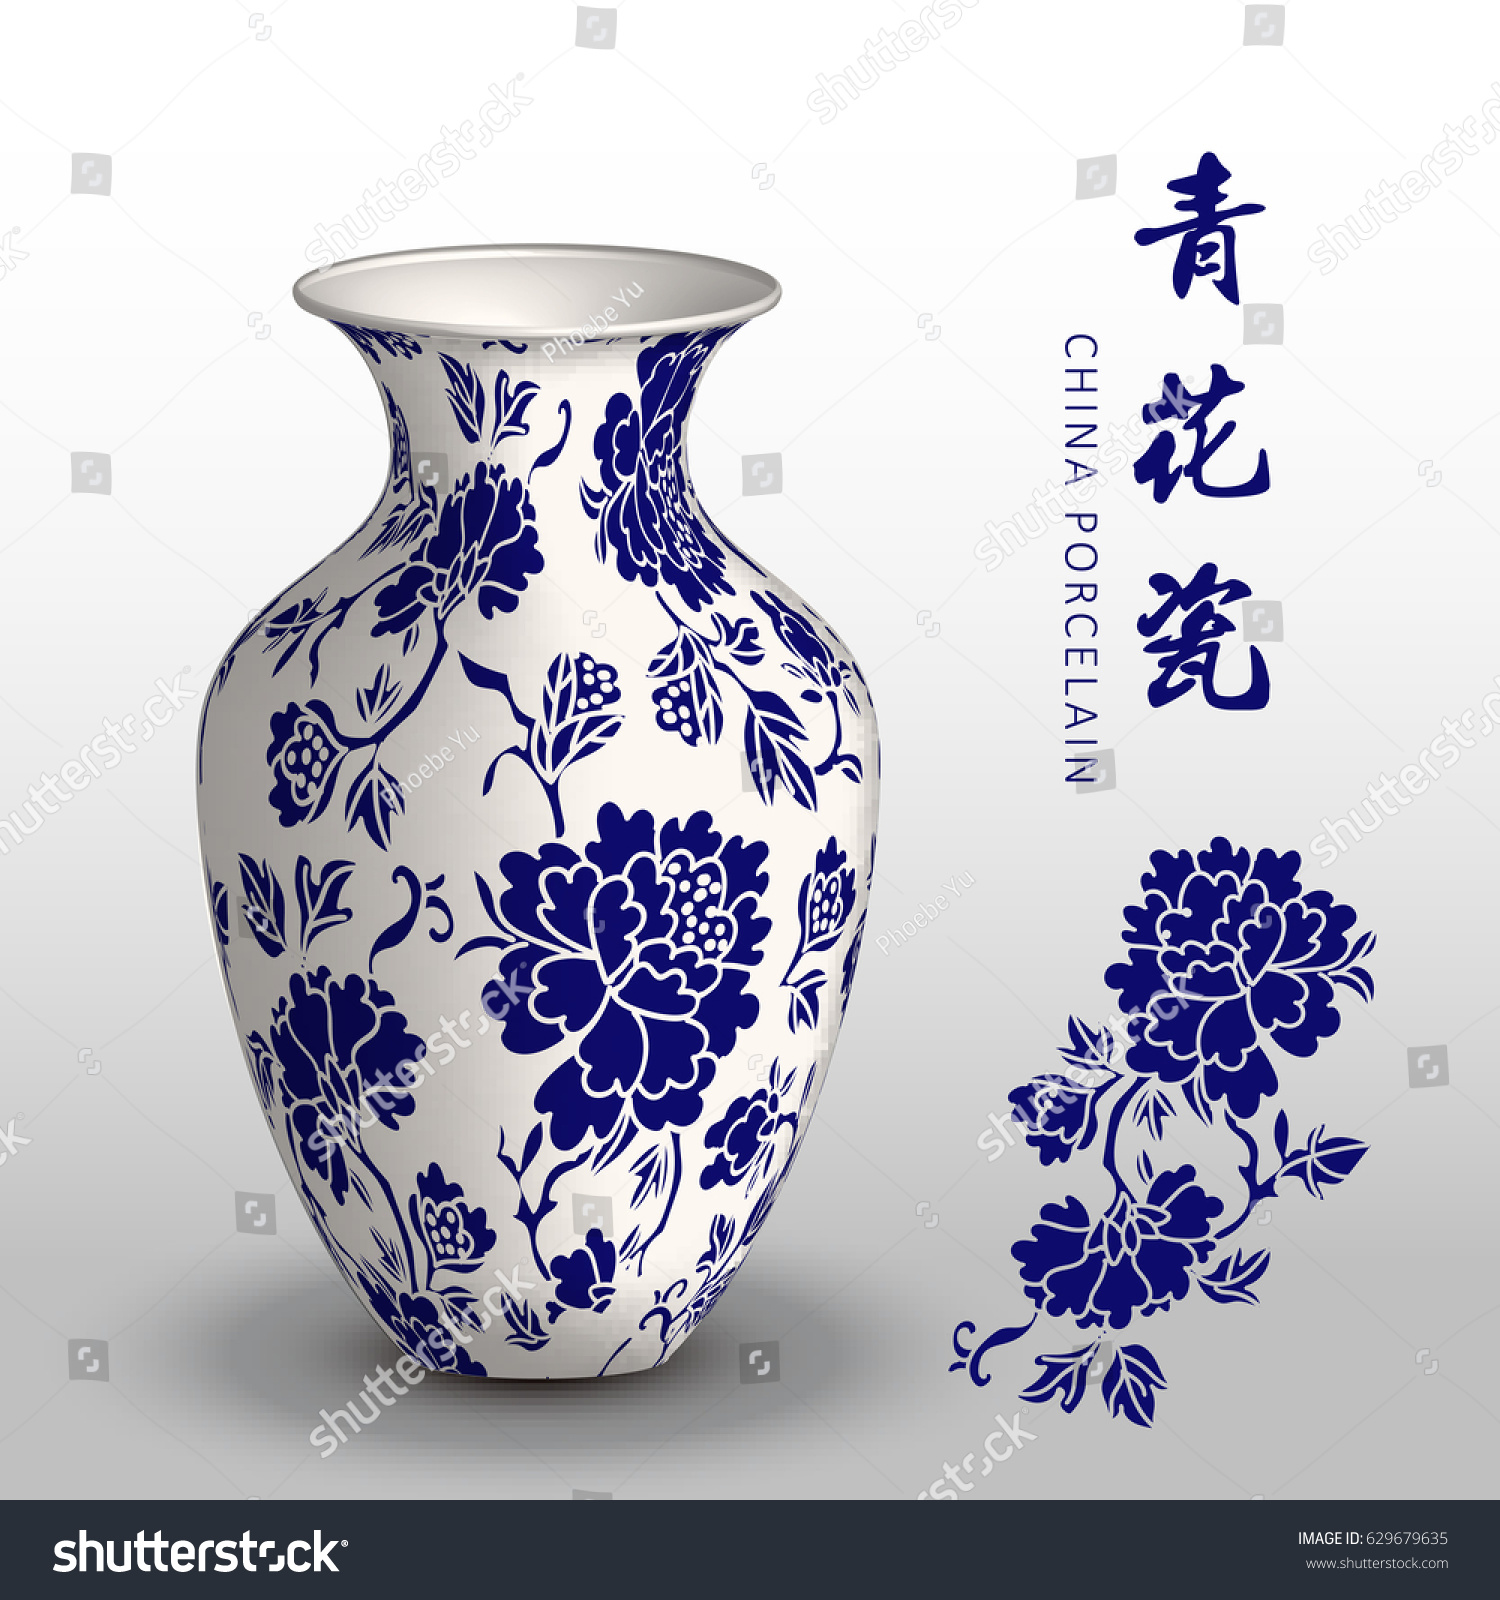 Navy blue china porcelain vase botanic stock vector 629679635 navy blue china porcelain vase botanic garden flower leaf ancient chinese porcelain mightylinksfo